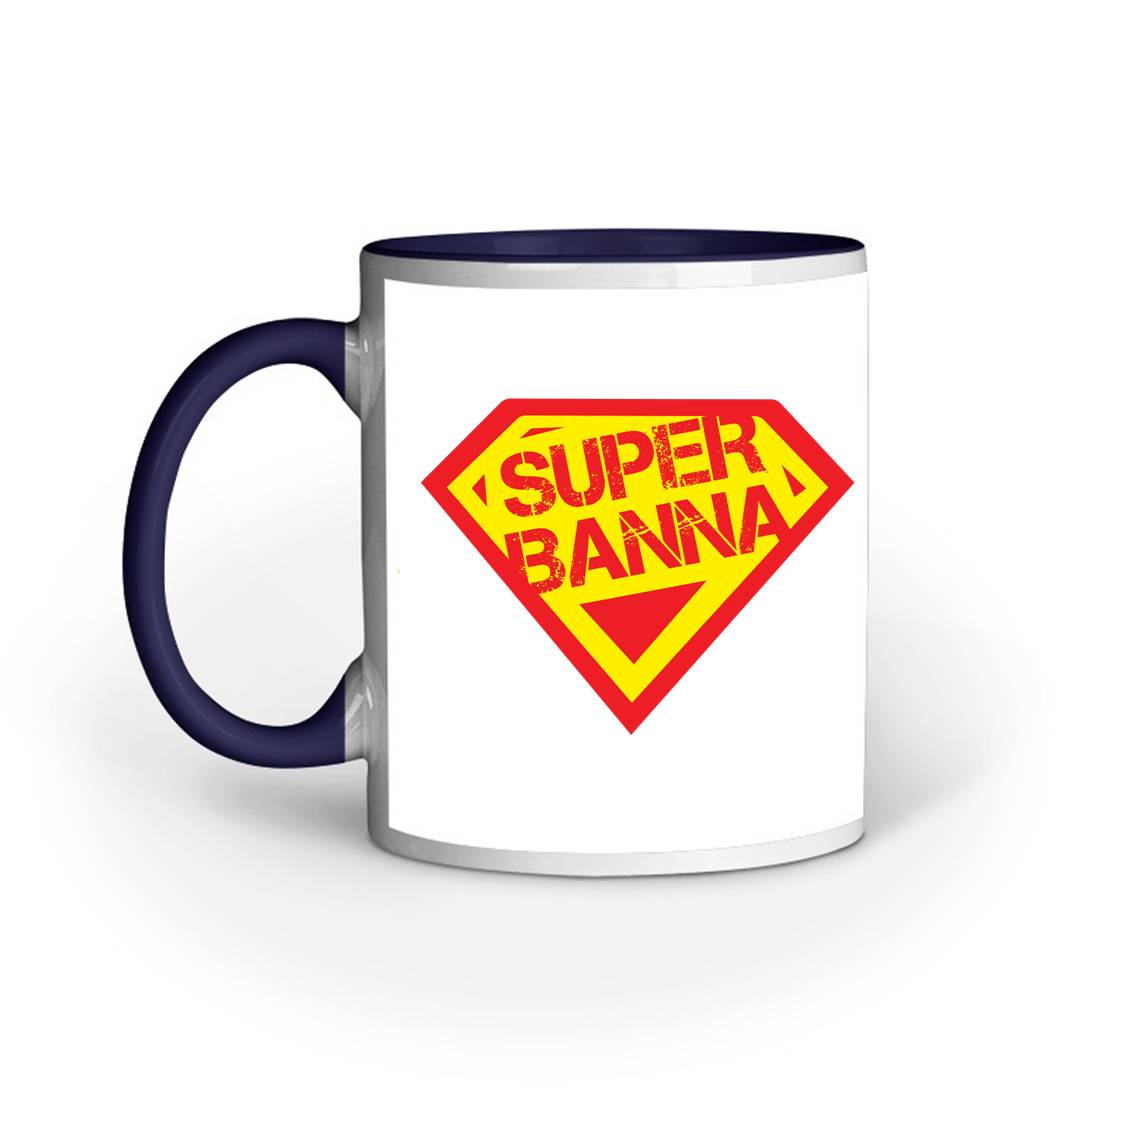 SUPER BANNA COFFEE MUG